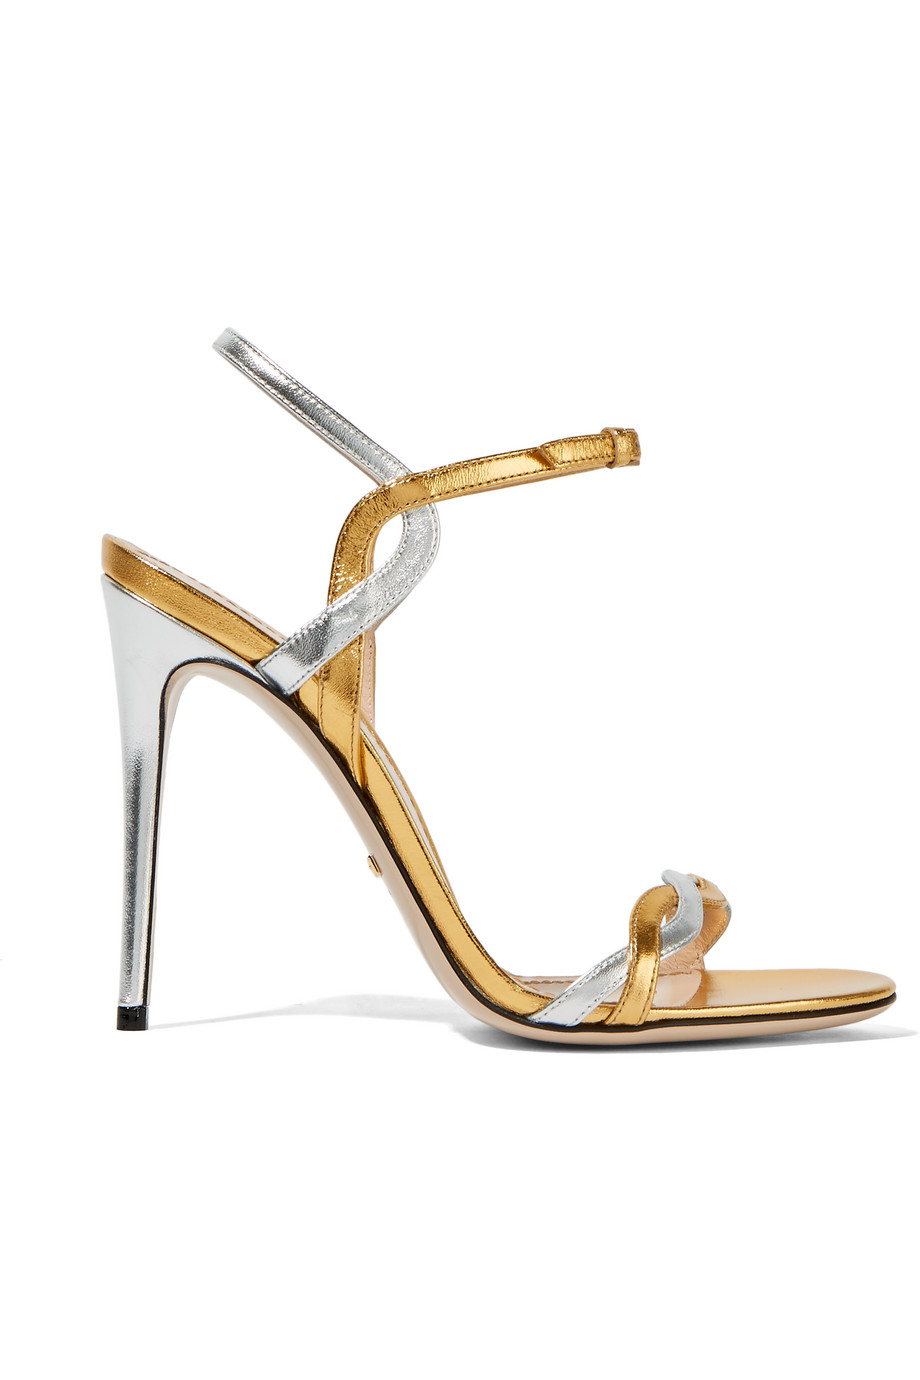 Gucci Two-Tone Metallic Leather Sandals, Gold/Metallic, Women's US Size: 6, Size: 36.5